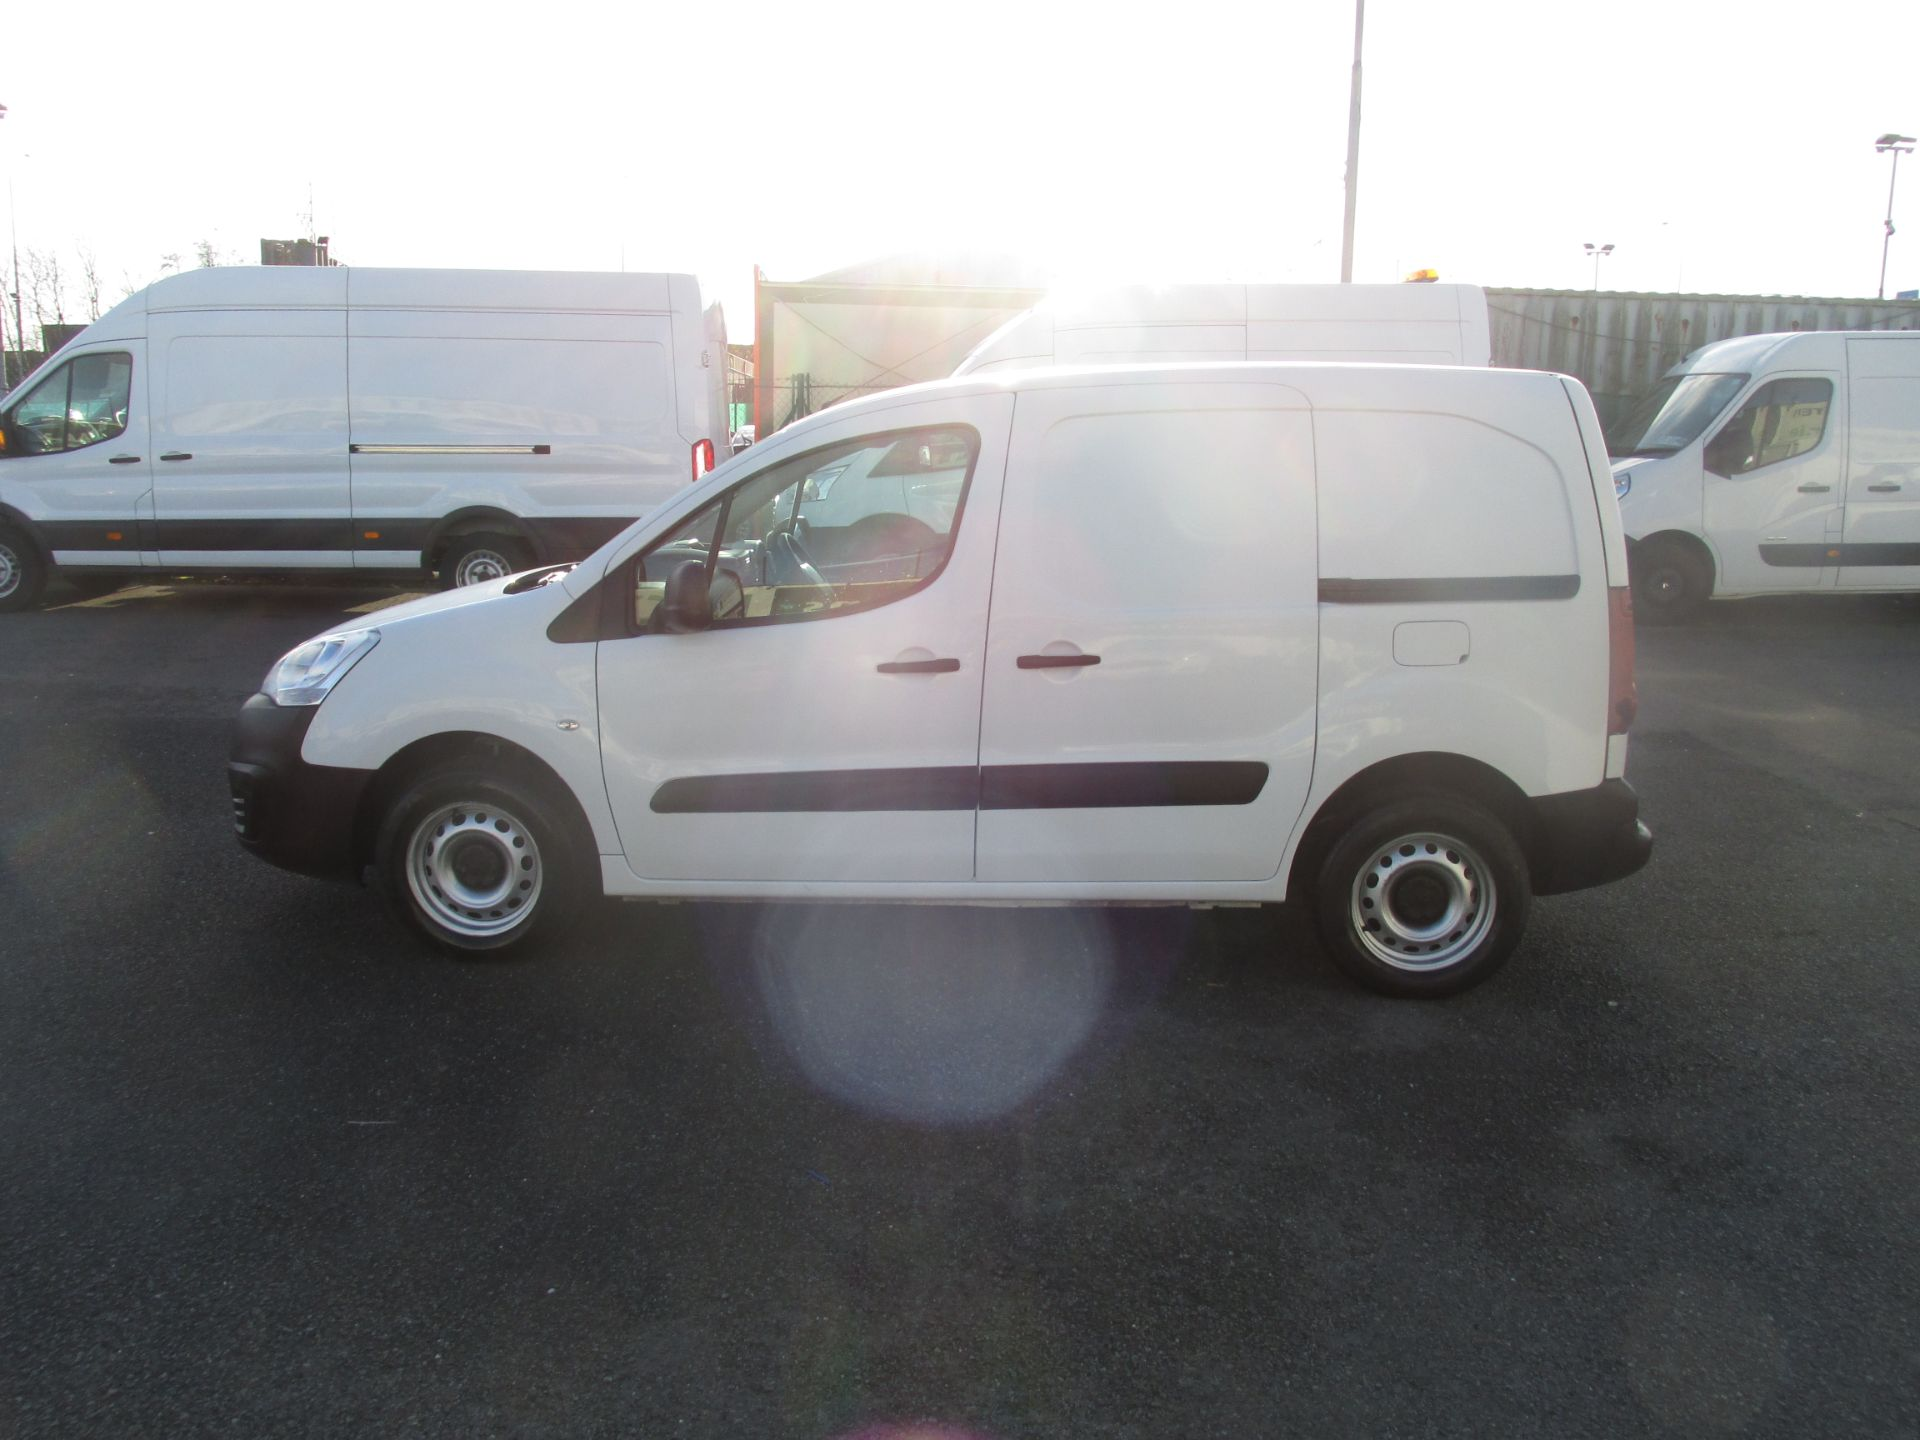 2016 Peugeot Partner #150 VANS TO VIEW IN SANTRY # (162D16363) Image 4